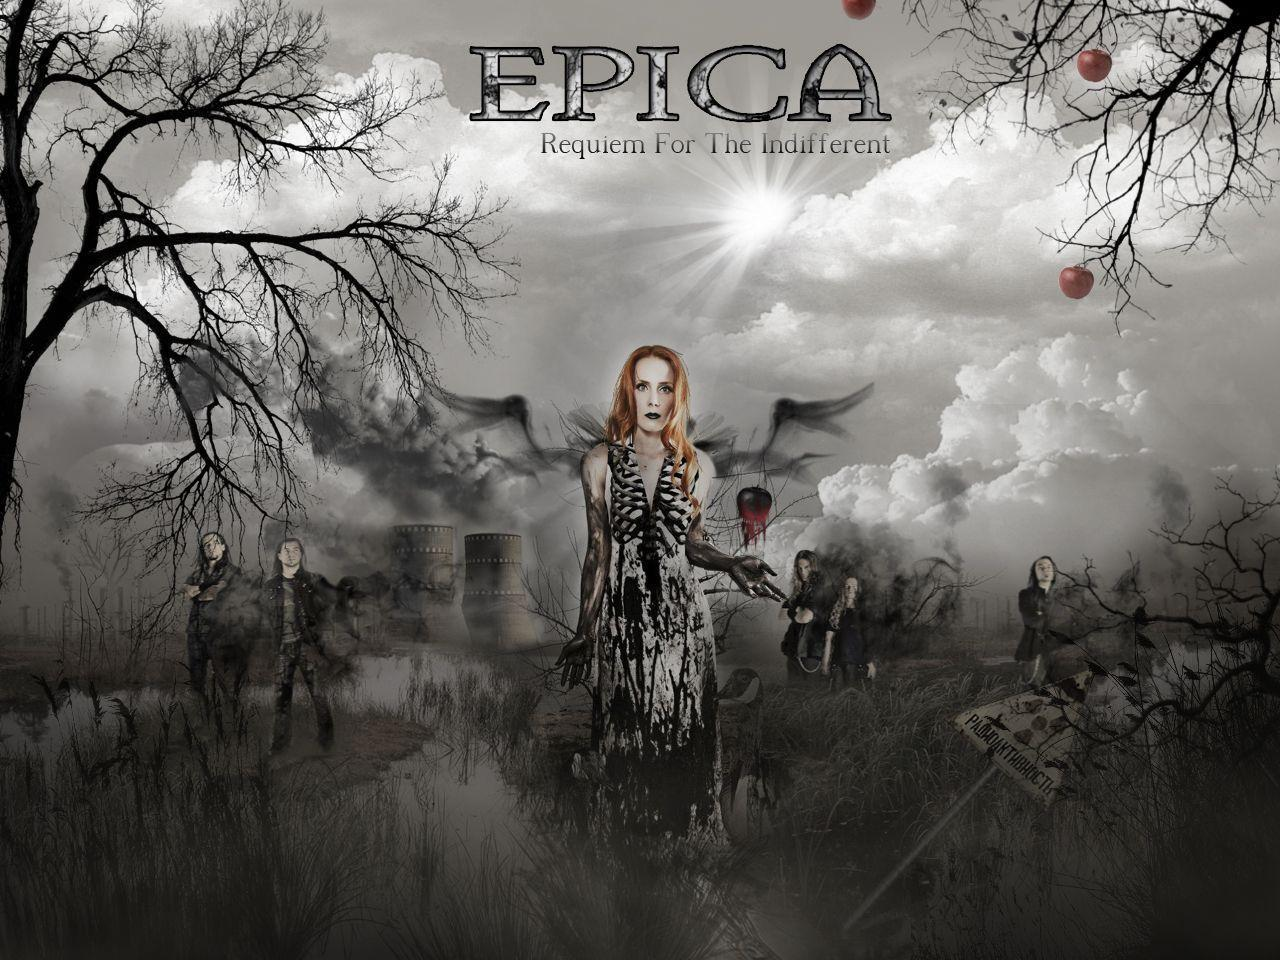 1000+ images about Epica and Simone on Pinterest | Posts, Dutch ...